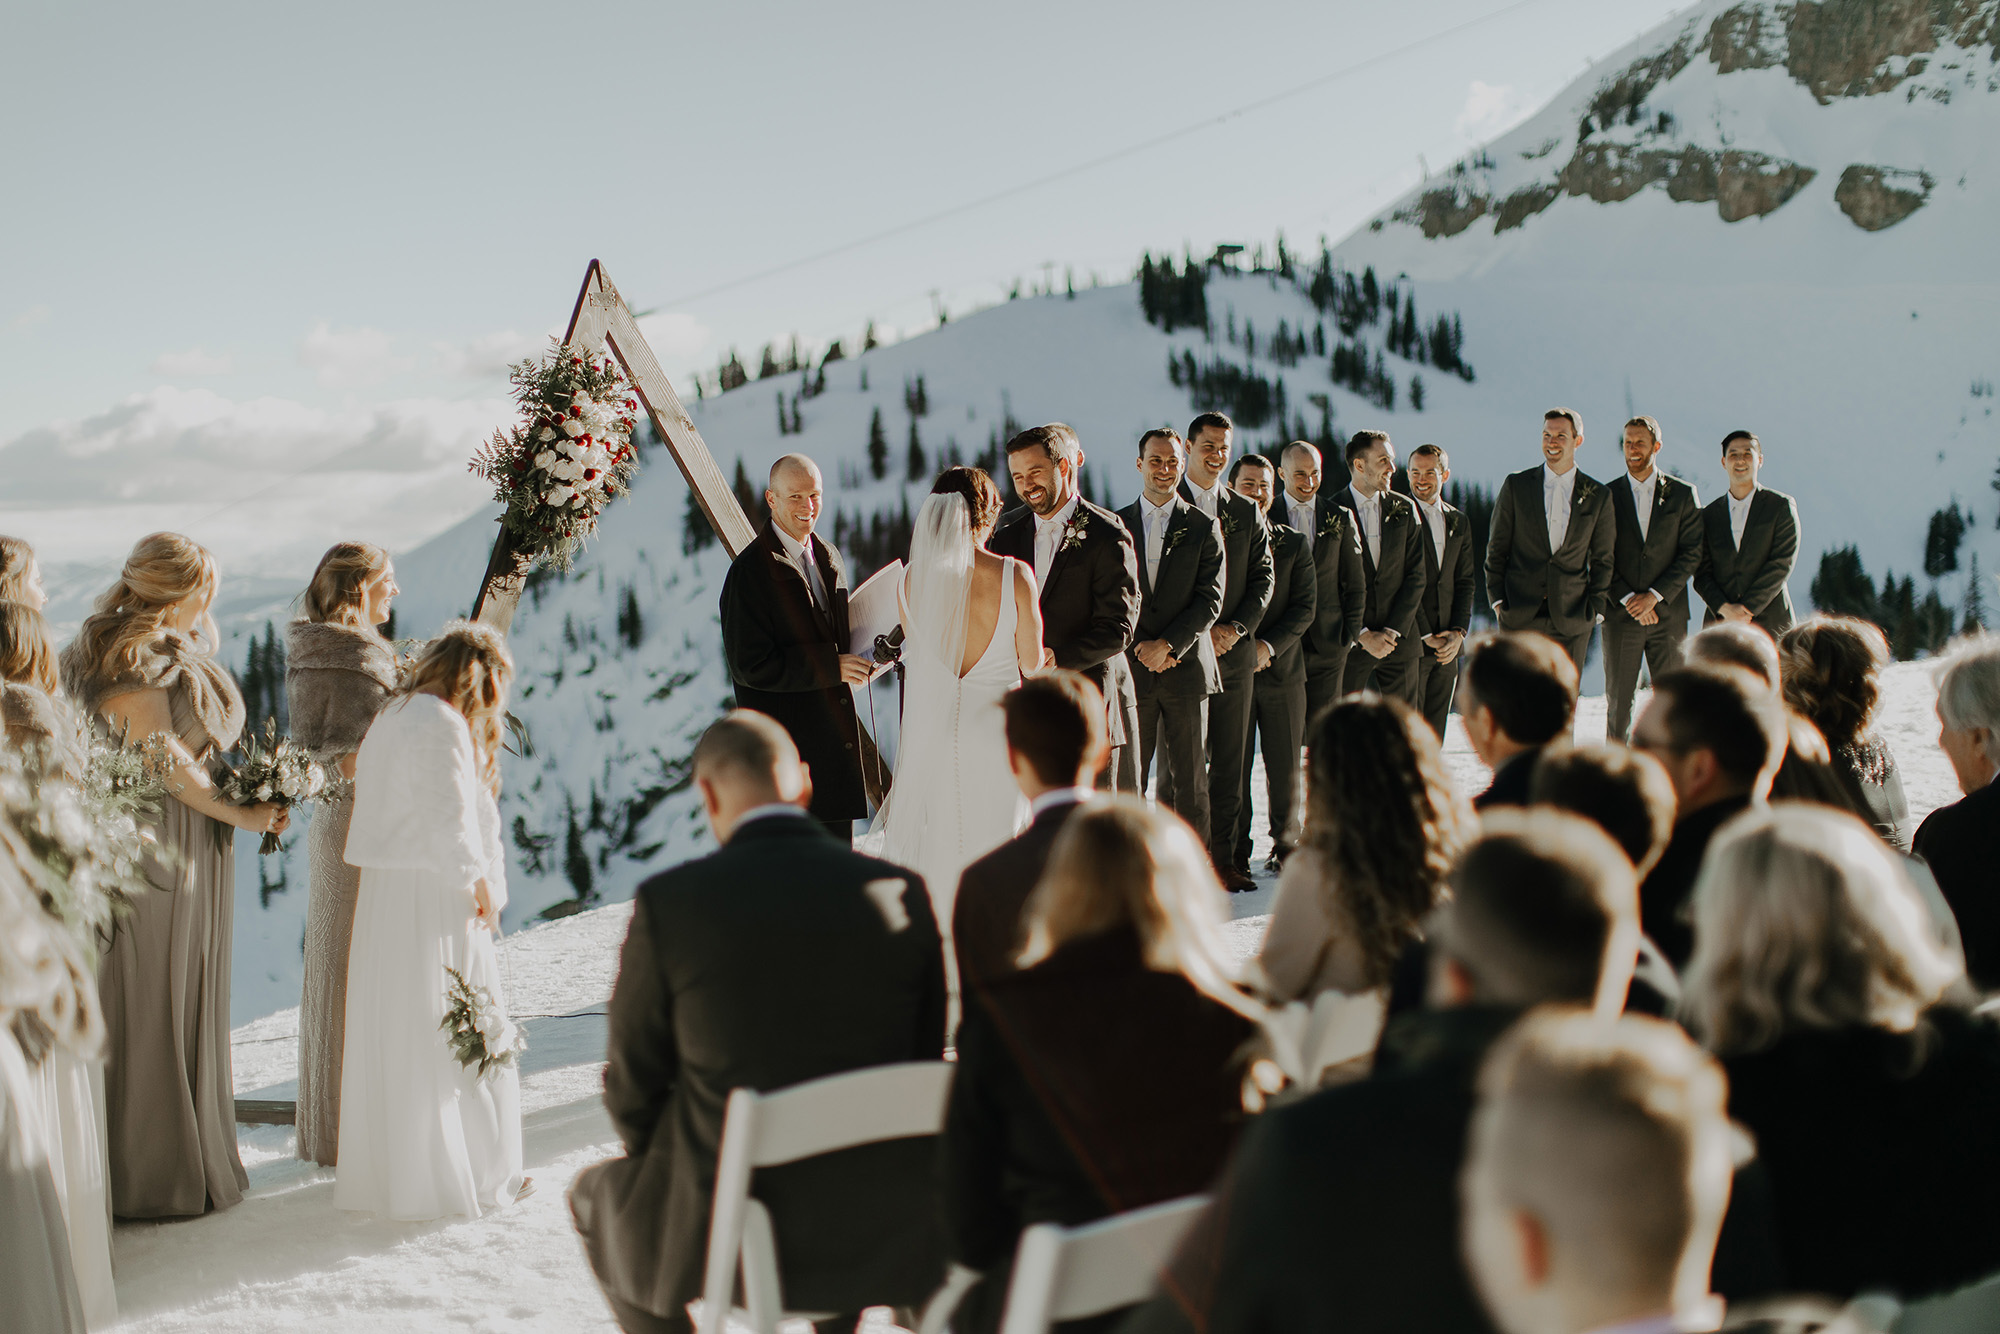 Trey Norris Andrea Geubelle Jackson Hole Wyoming Wedding Photographer